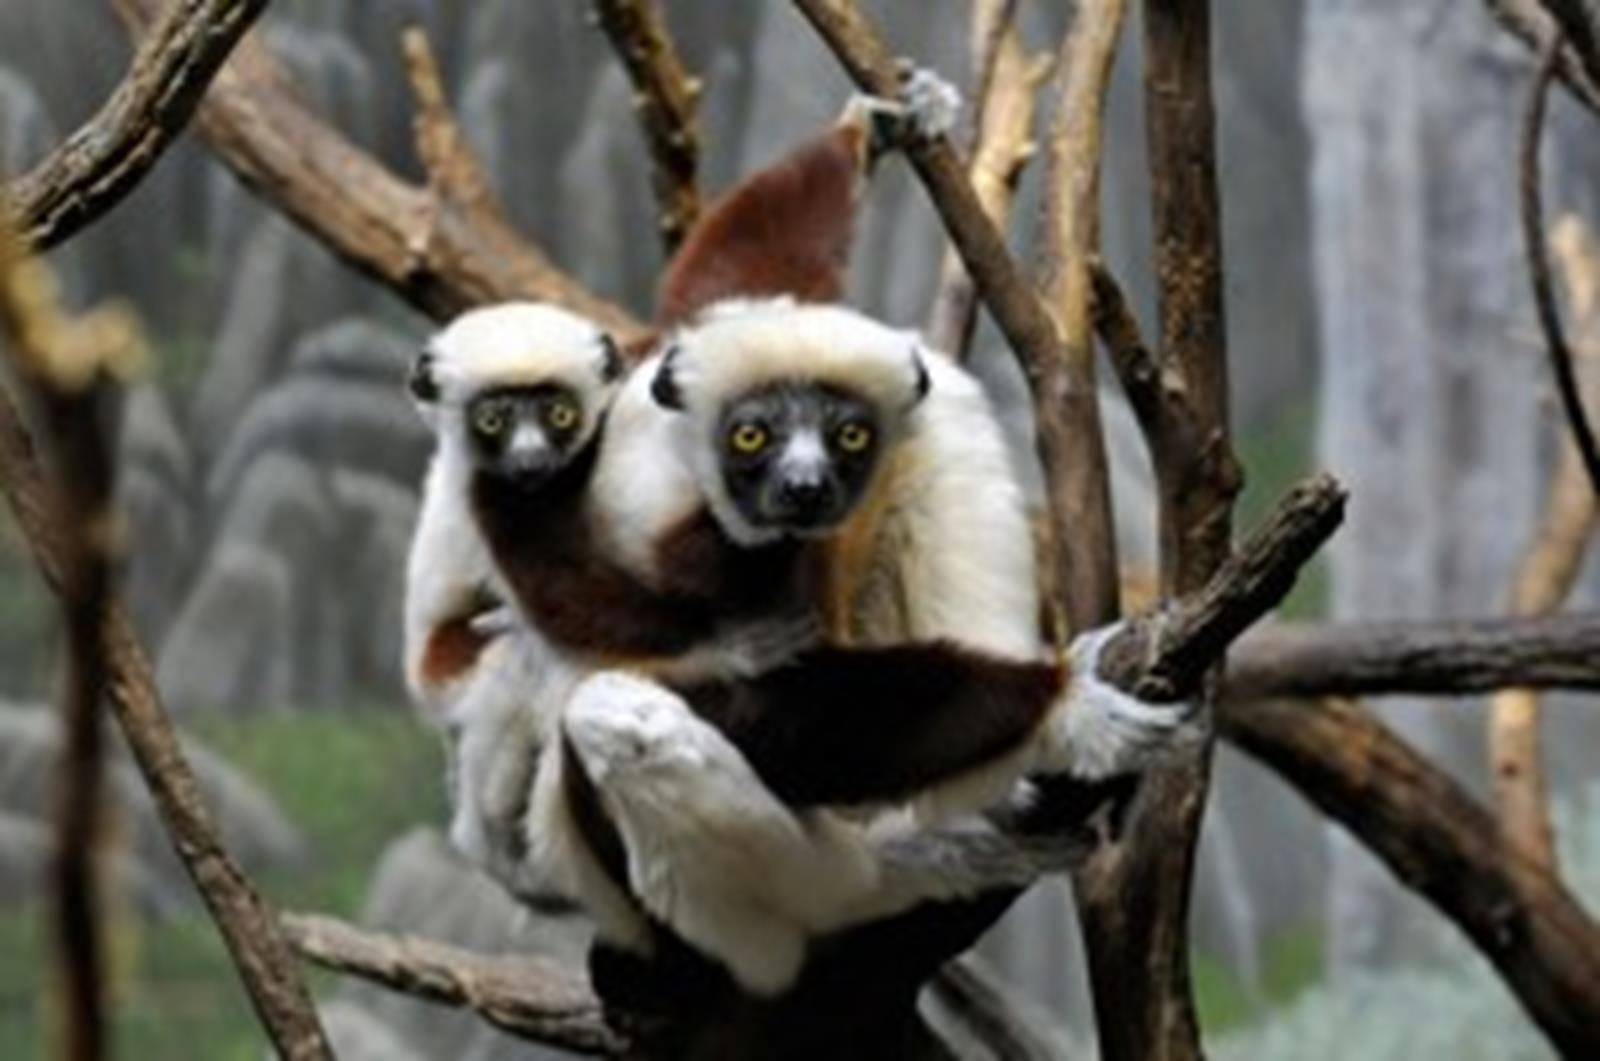 Coquerel's Sifaka and Baby (Photo Courtesy of Julie Larsen Maher & BronxZoo.com)